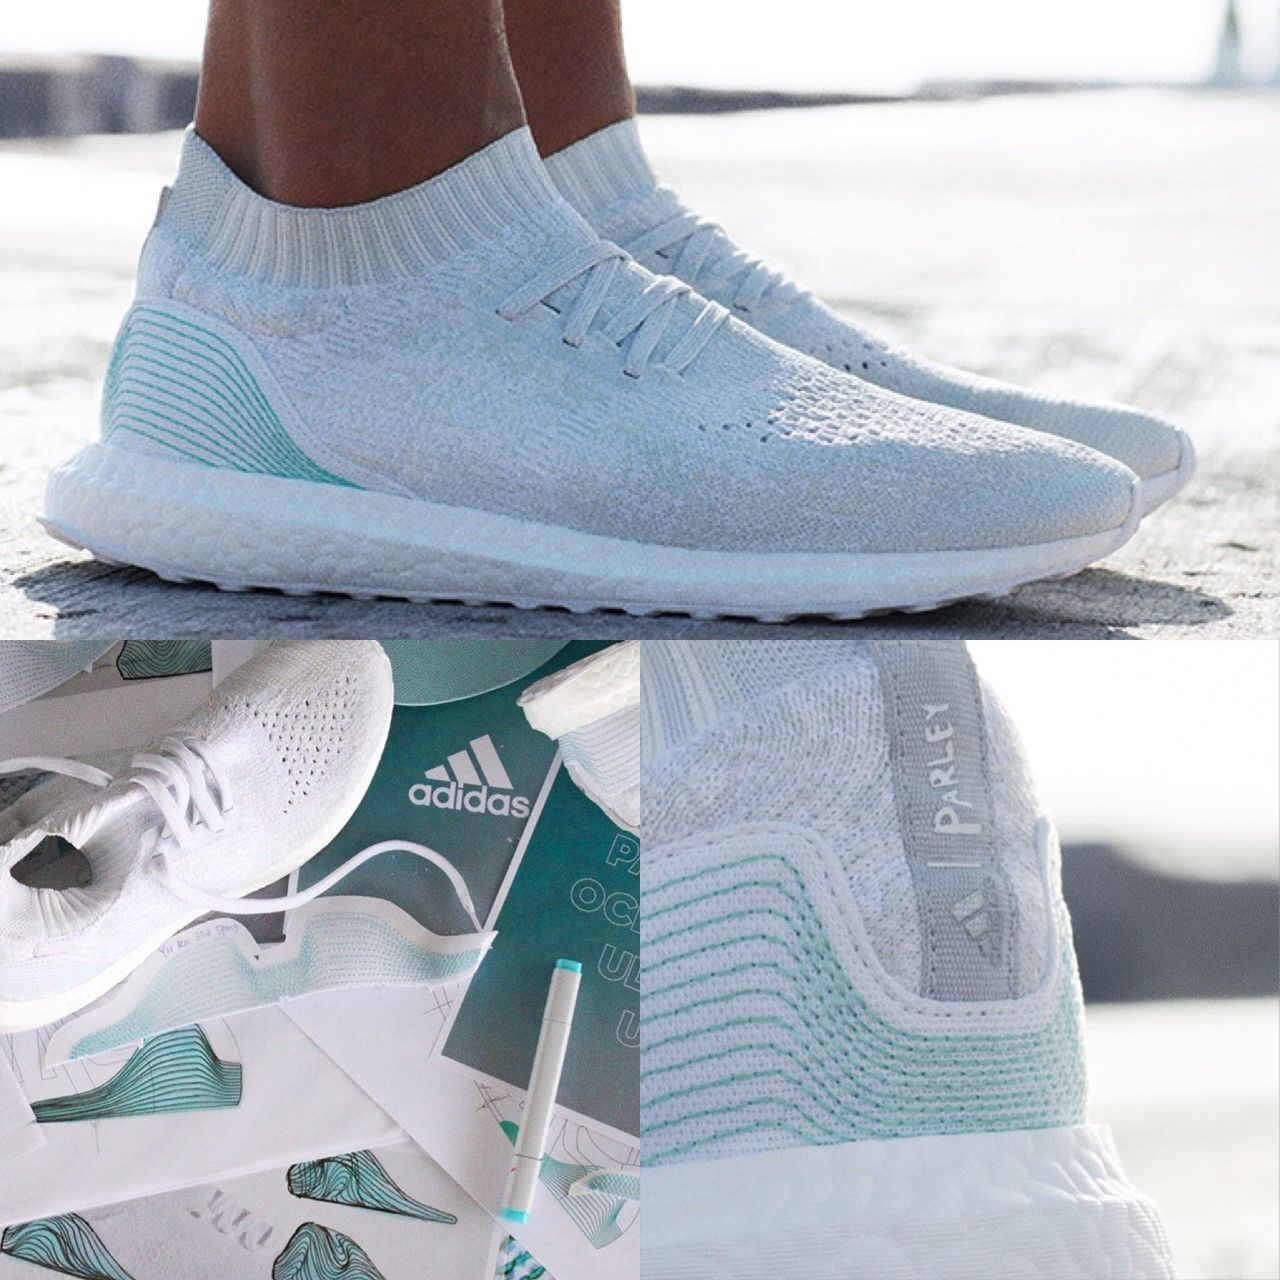 24+ Adidas made of recycled plastic trends